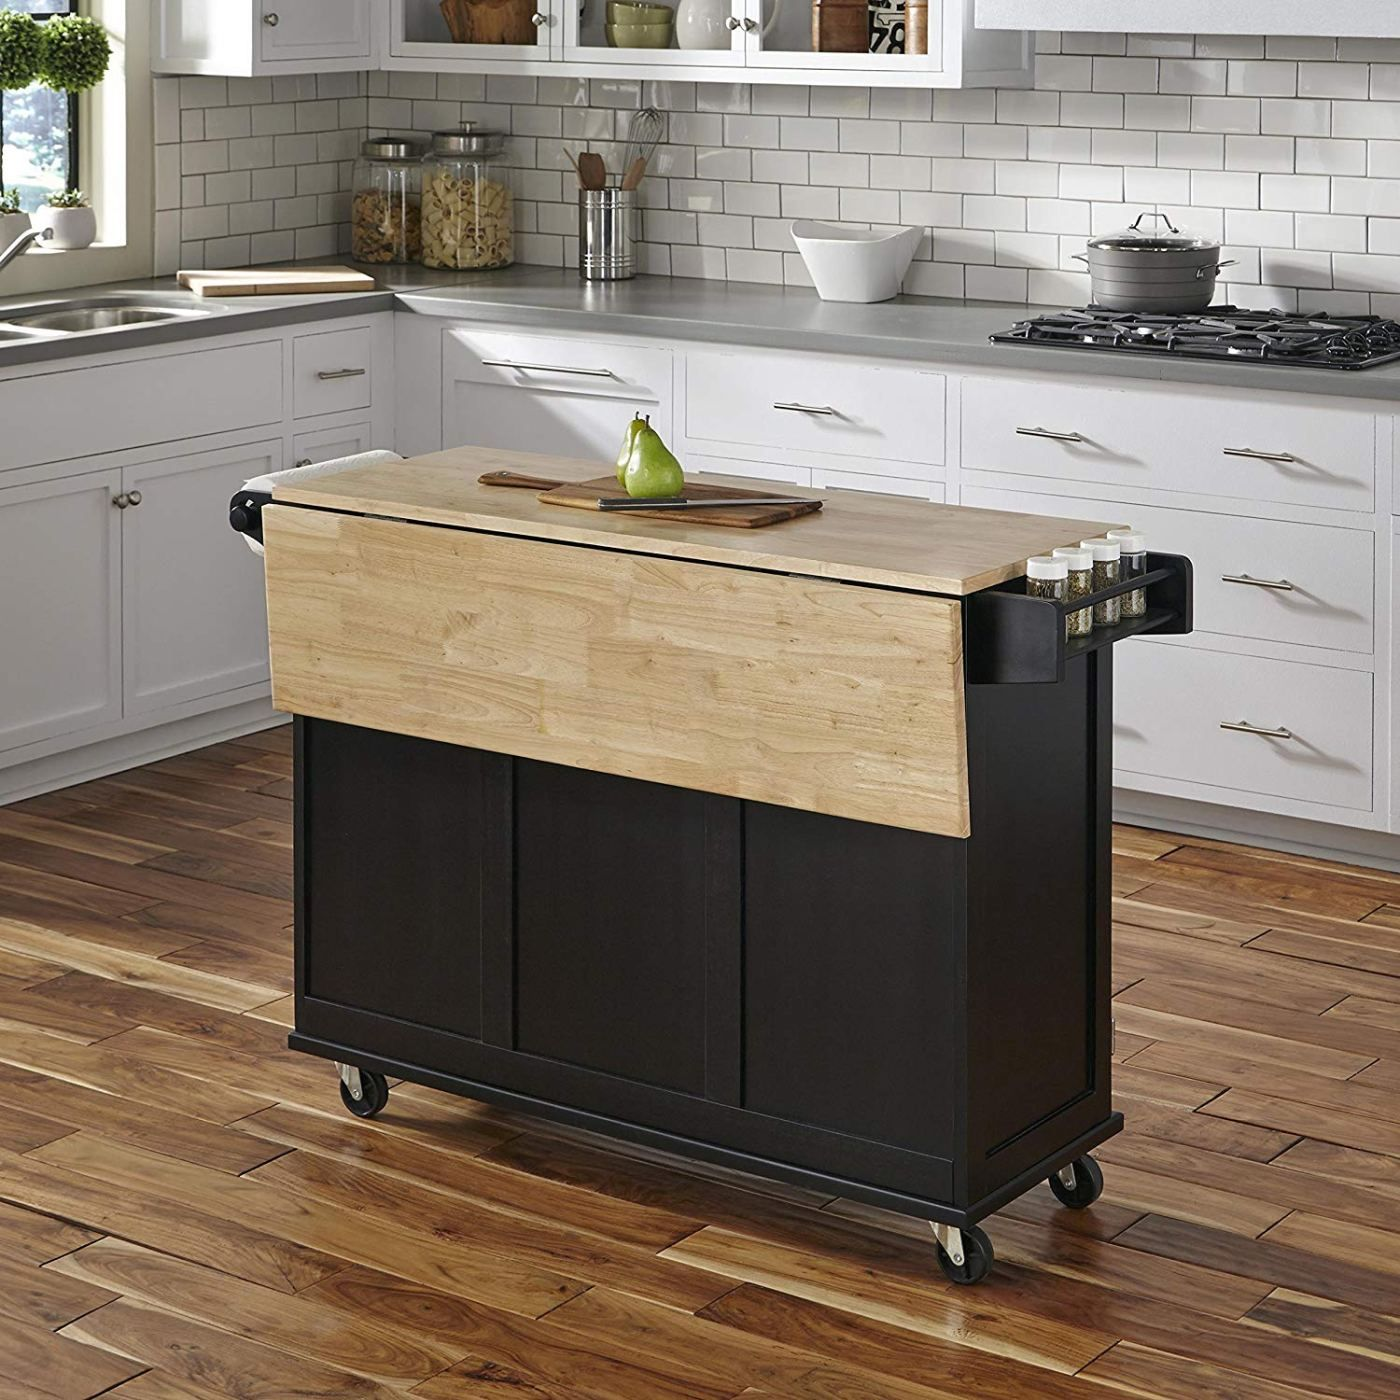 10 Best Selling Small Rolling Kitchen Islands On Amazon In 2020